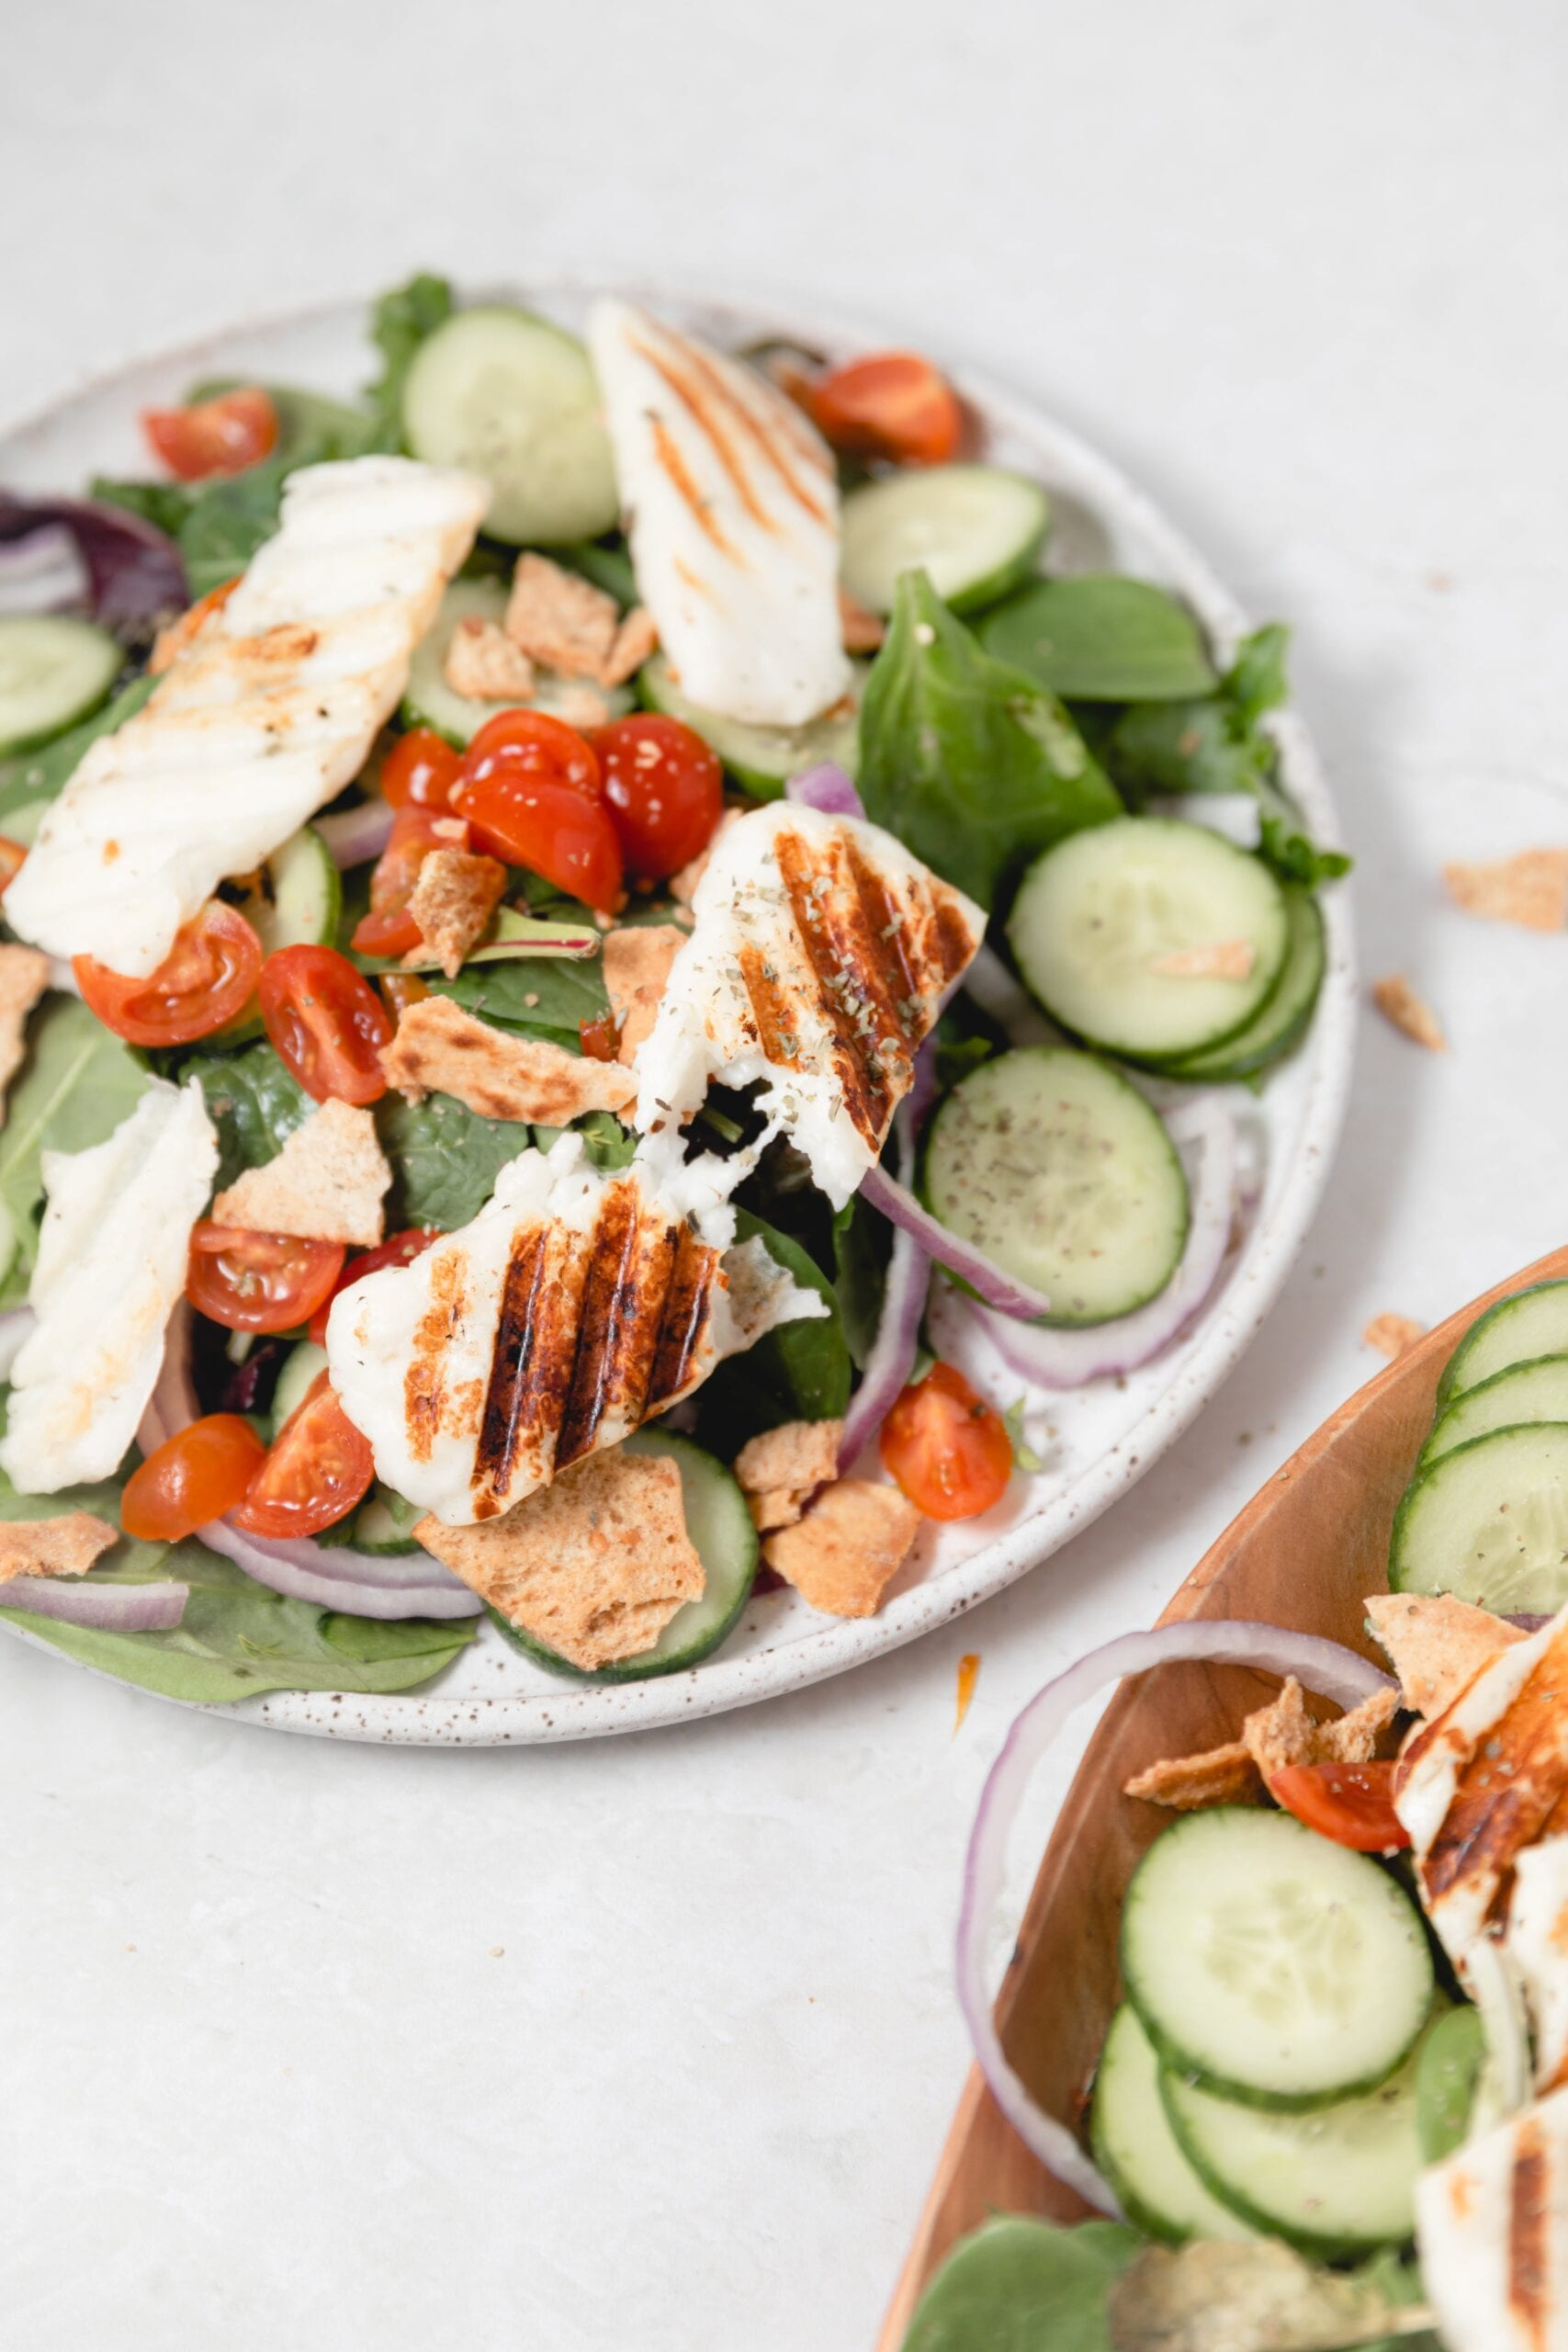 a piece of grilled Halloumi cheese pulled in half on a mixed greens salad